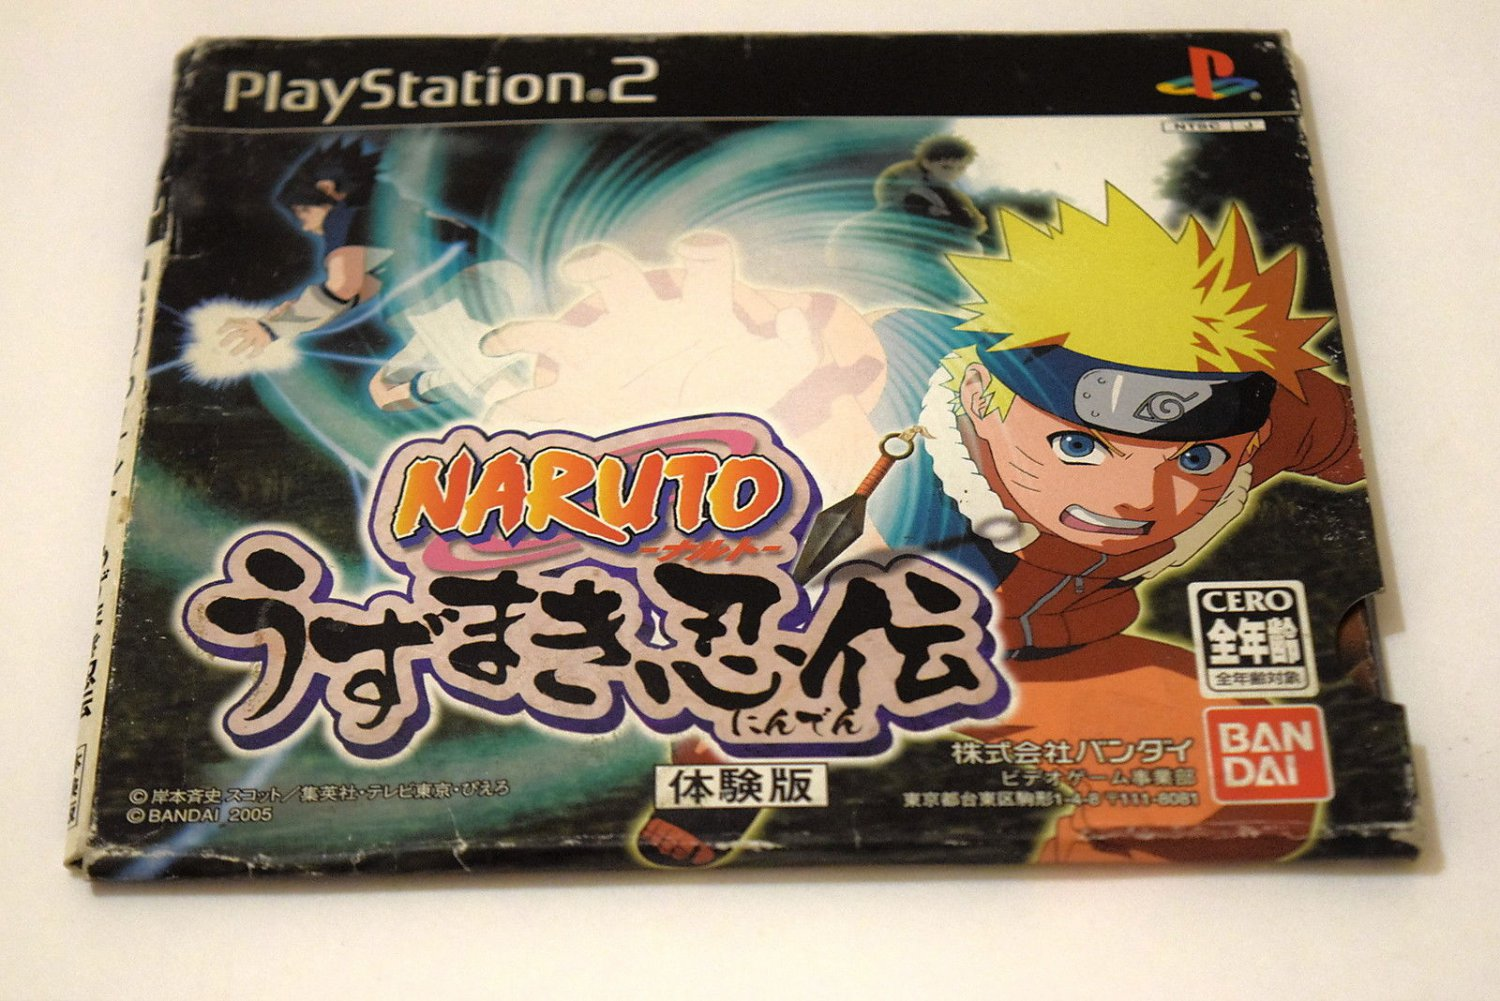 NARUTO: UZUMAKI CHRONICLES - JAPAN